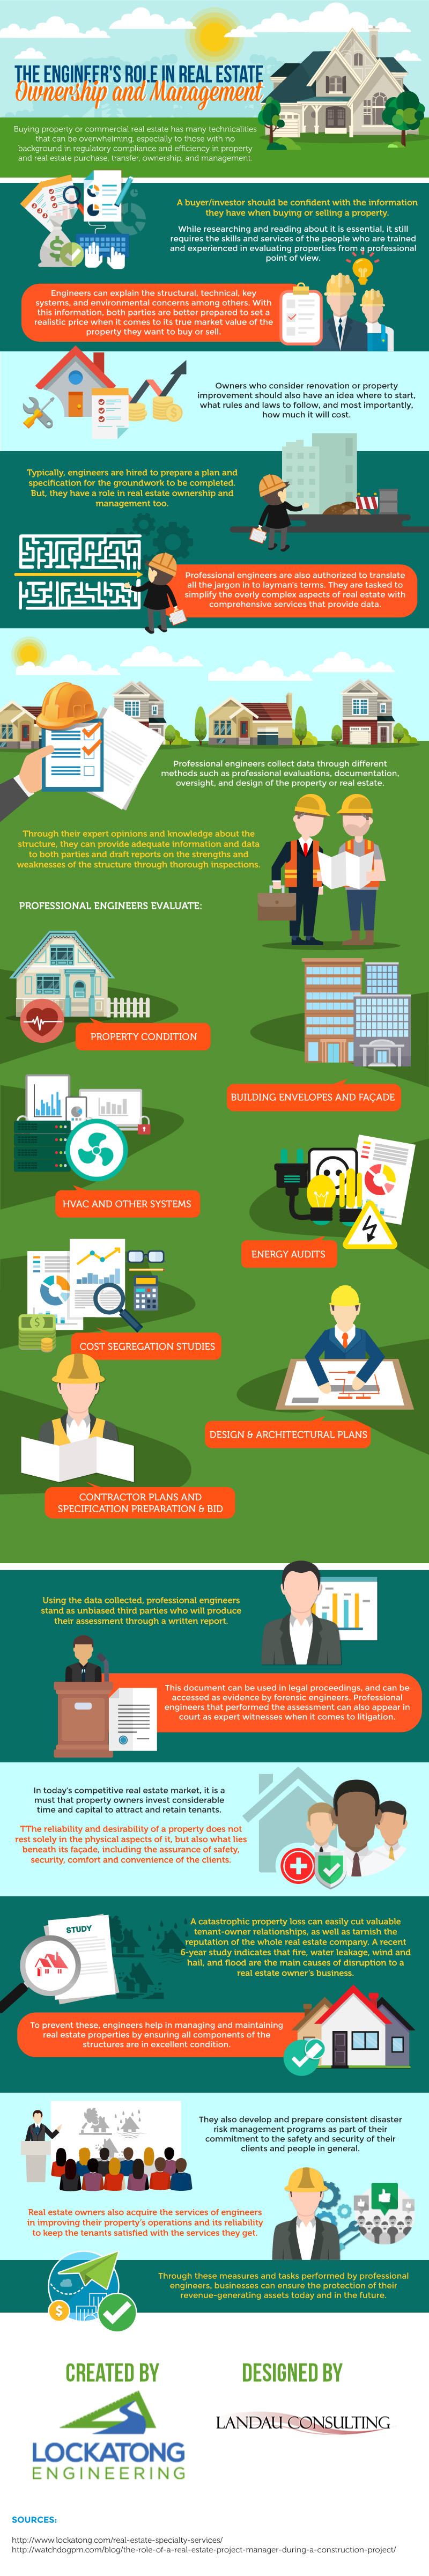 Engineer Role in Real Estate Ownership and Management [Infographic]